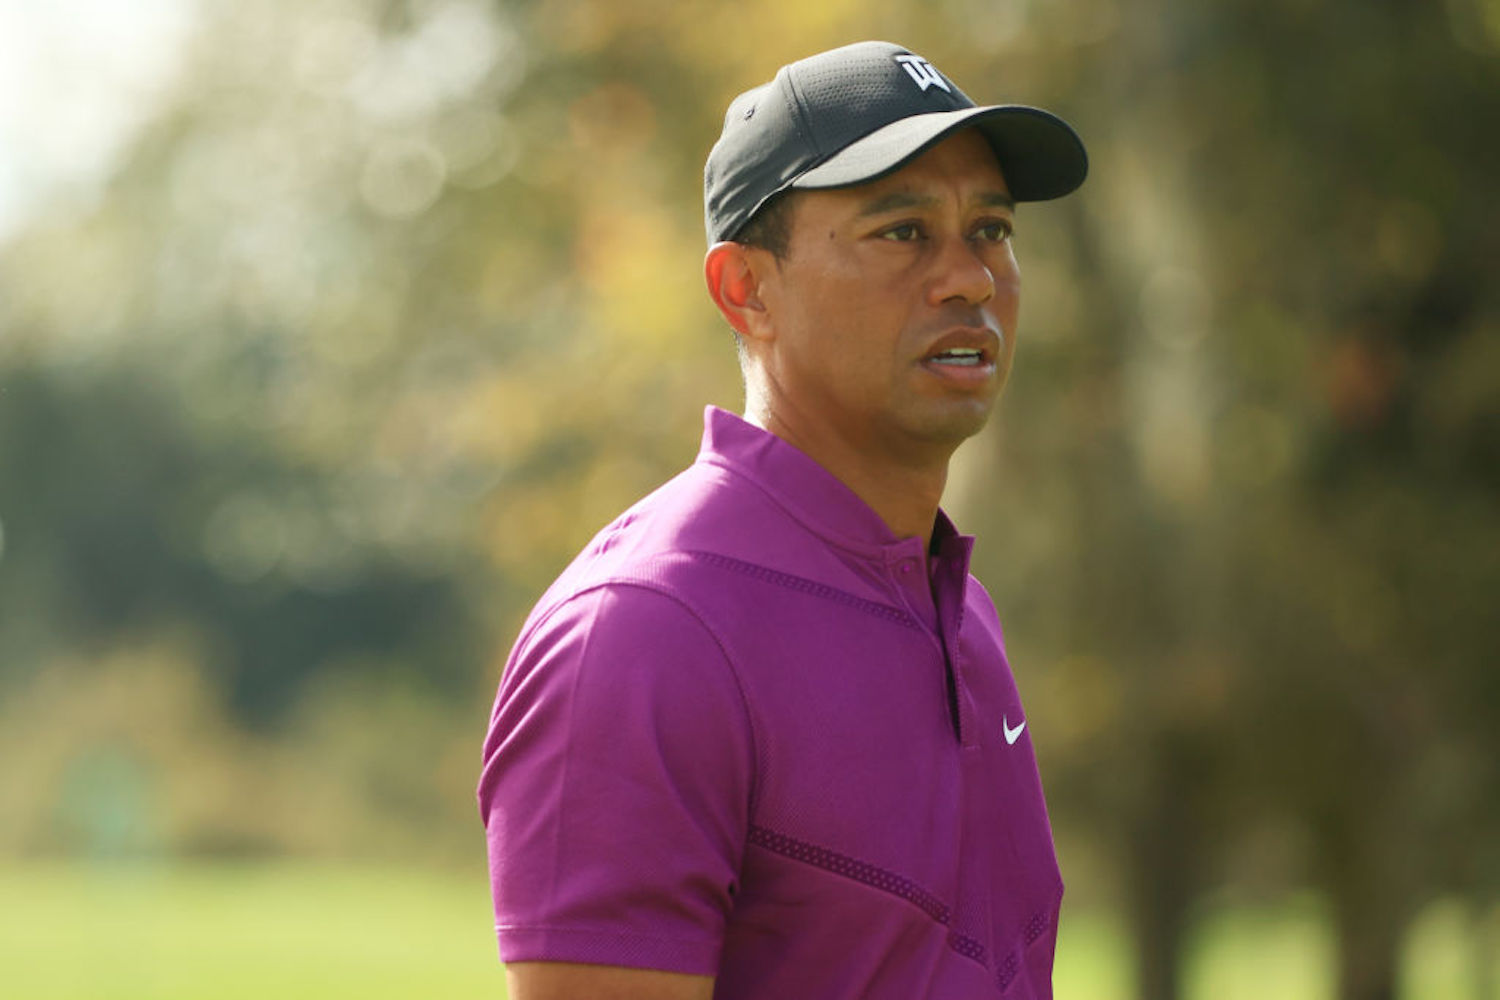 Tiger Woods has been fully healthy for the first time in a while, but another back surgery will keep him sidelined for a few months.